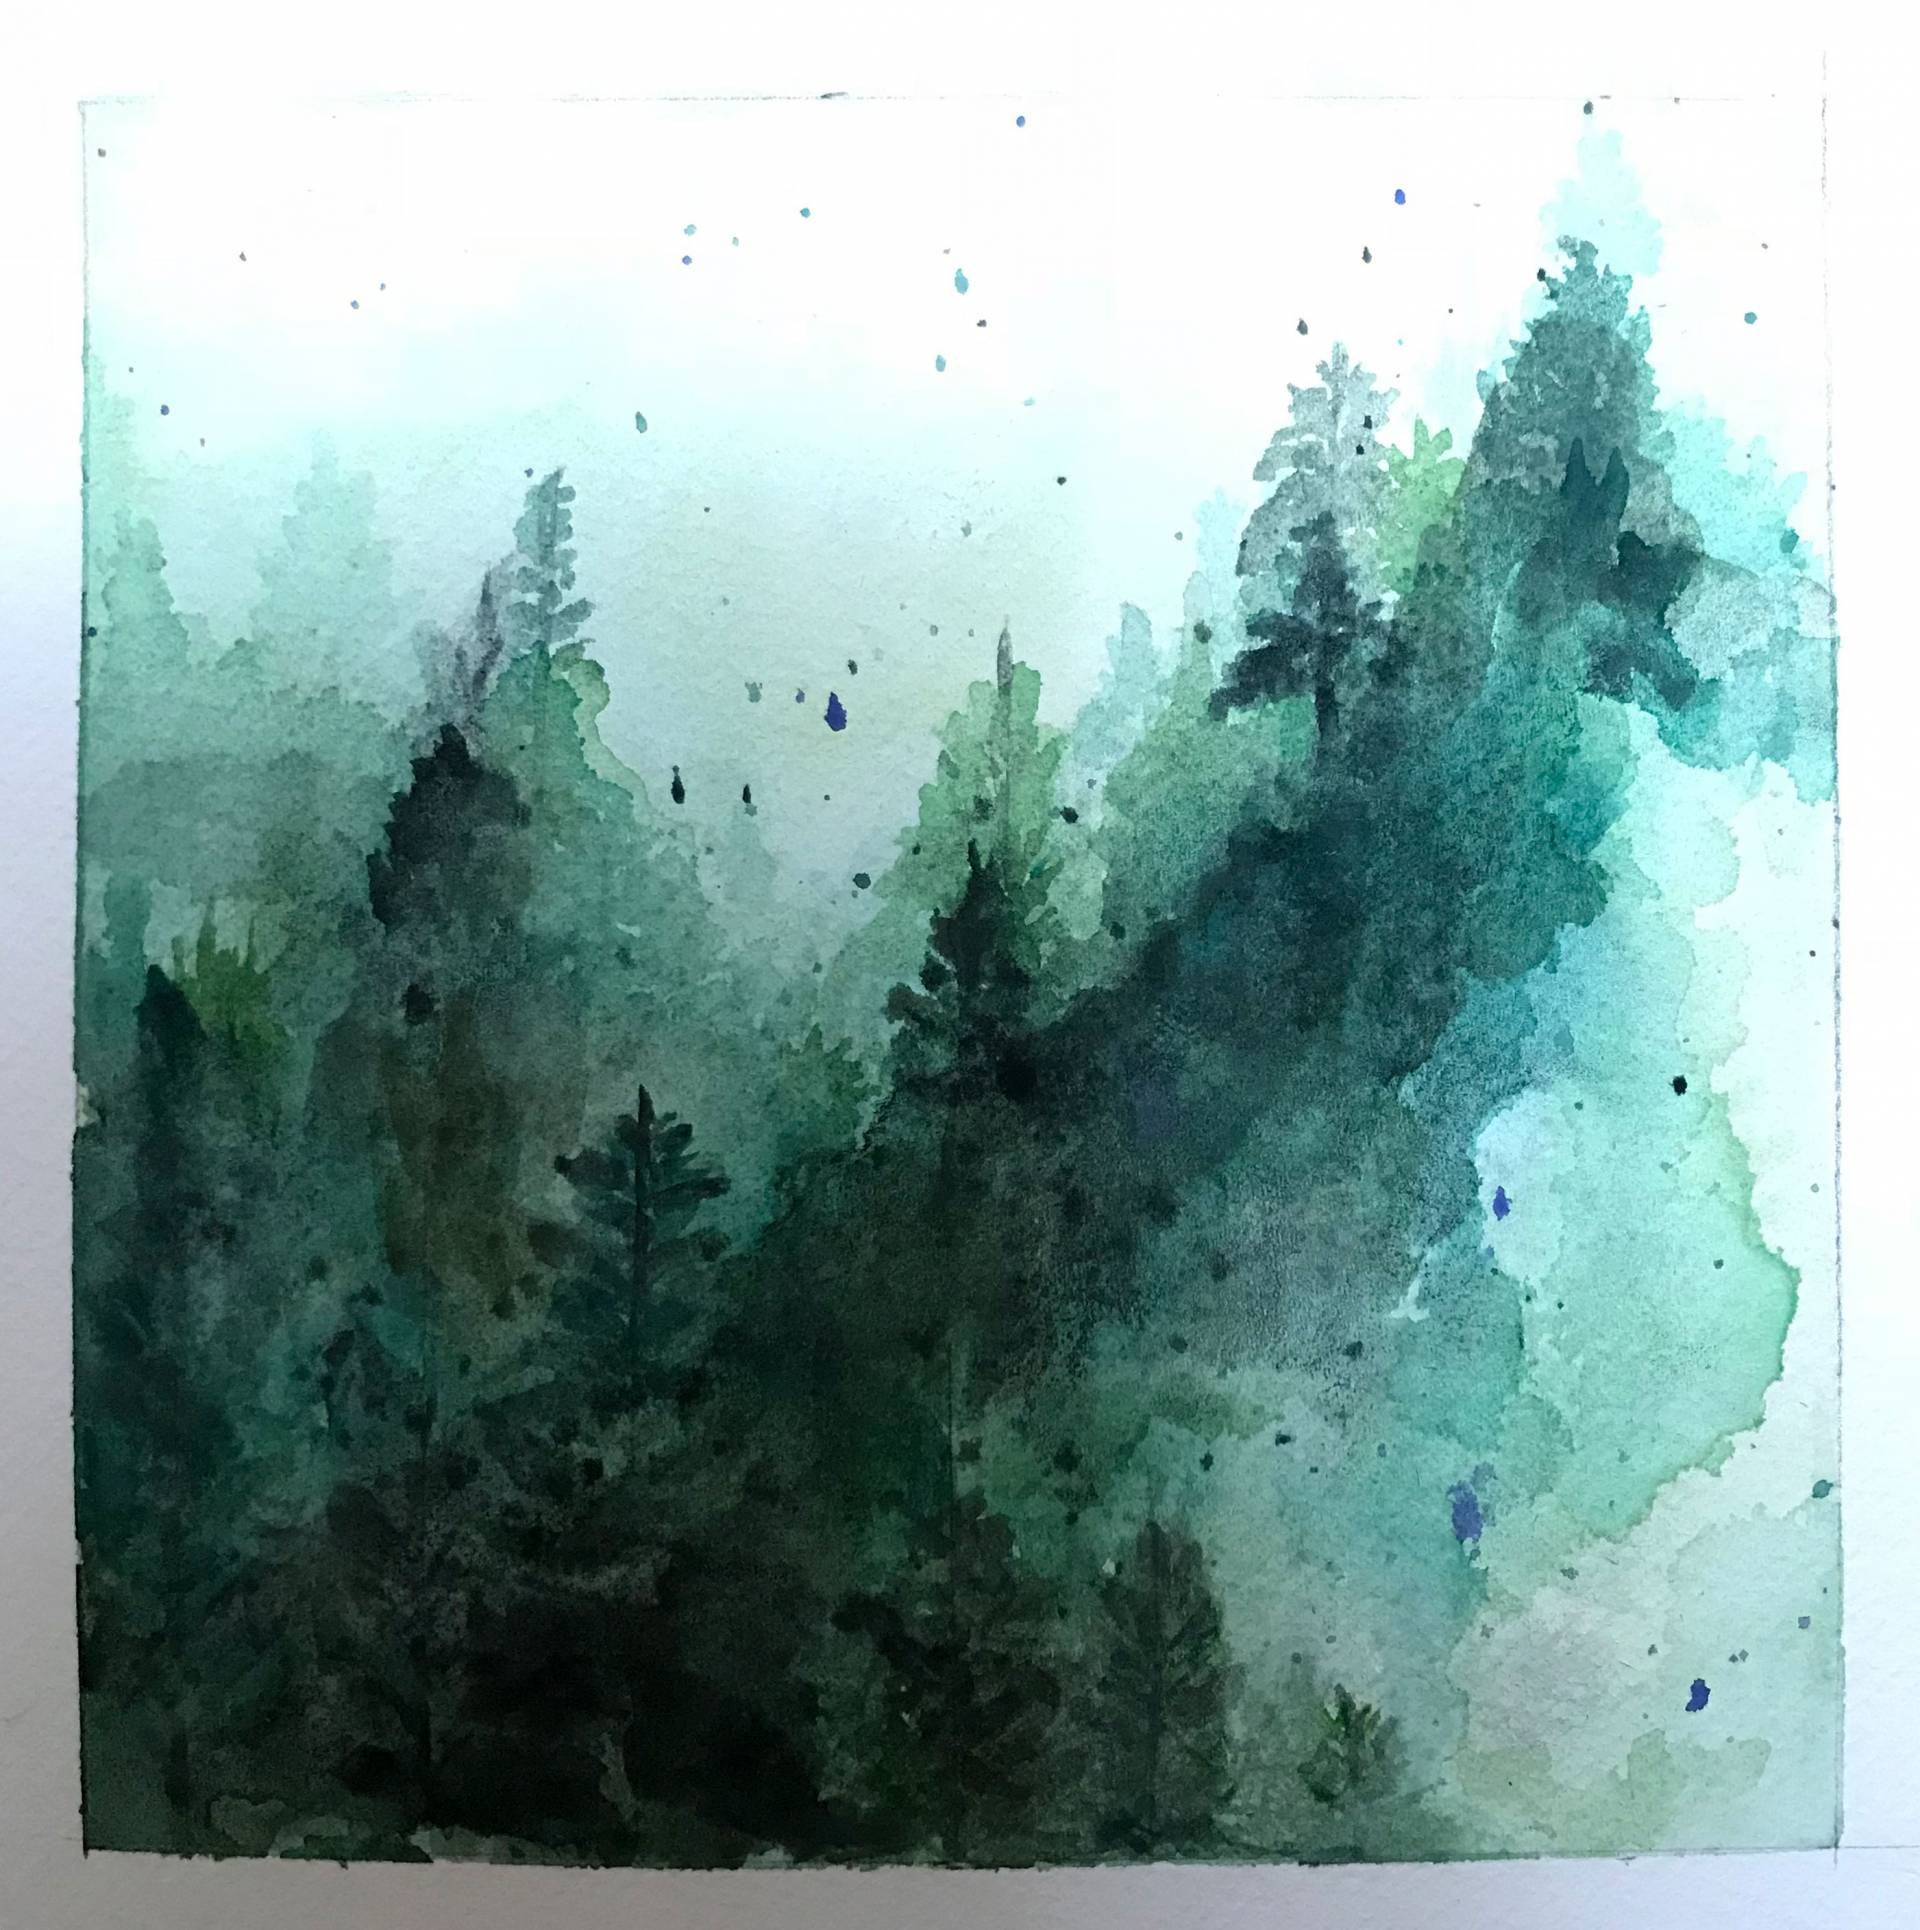 Watercolor painting of trees